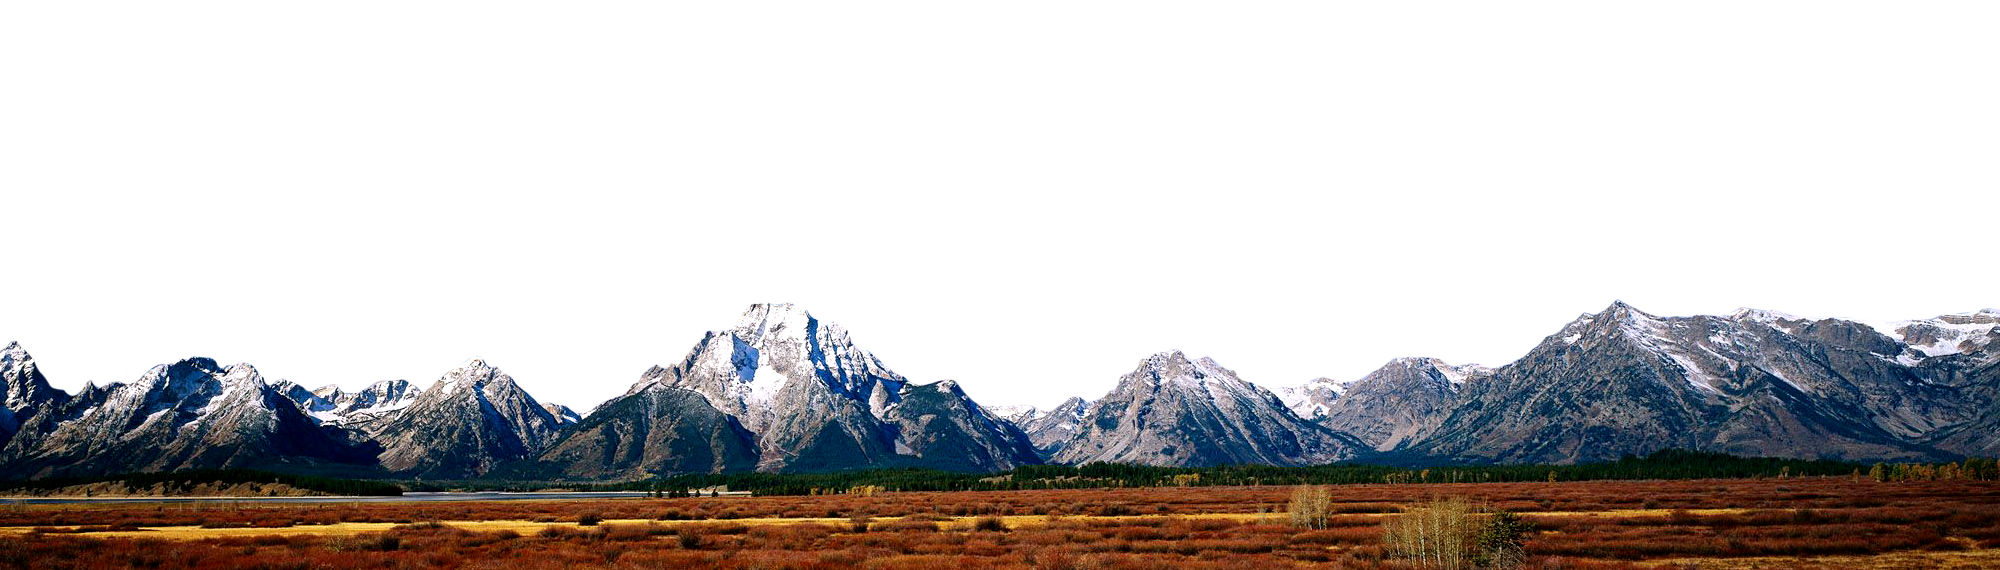 Mountains png. Images transparent free download